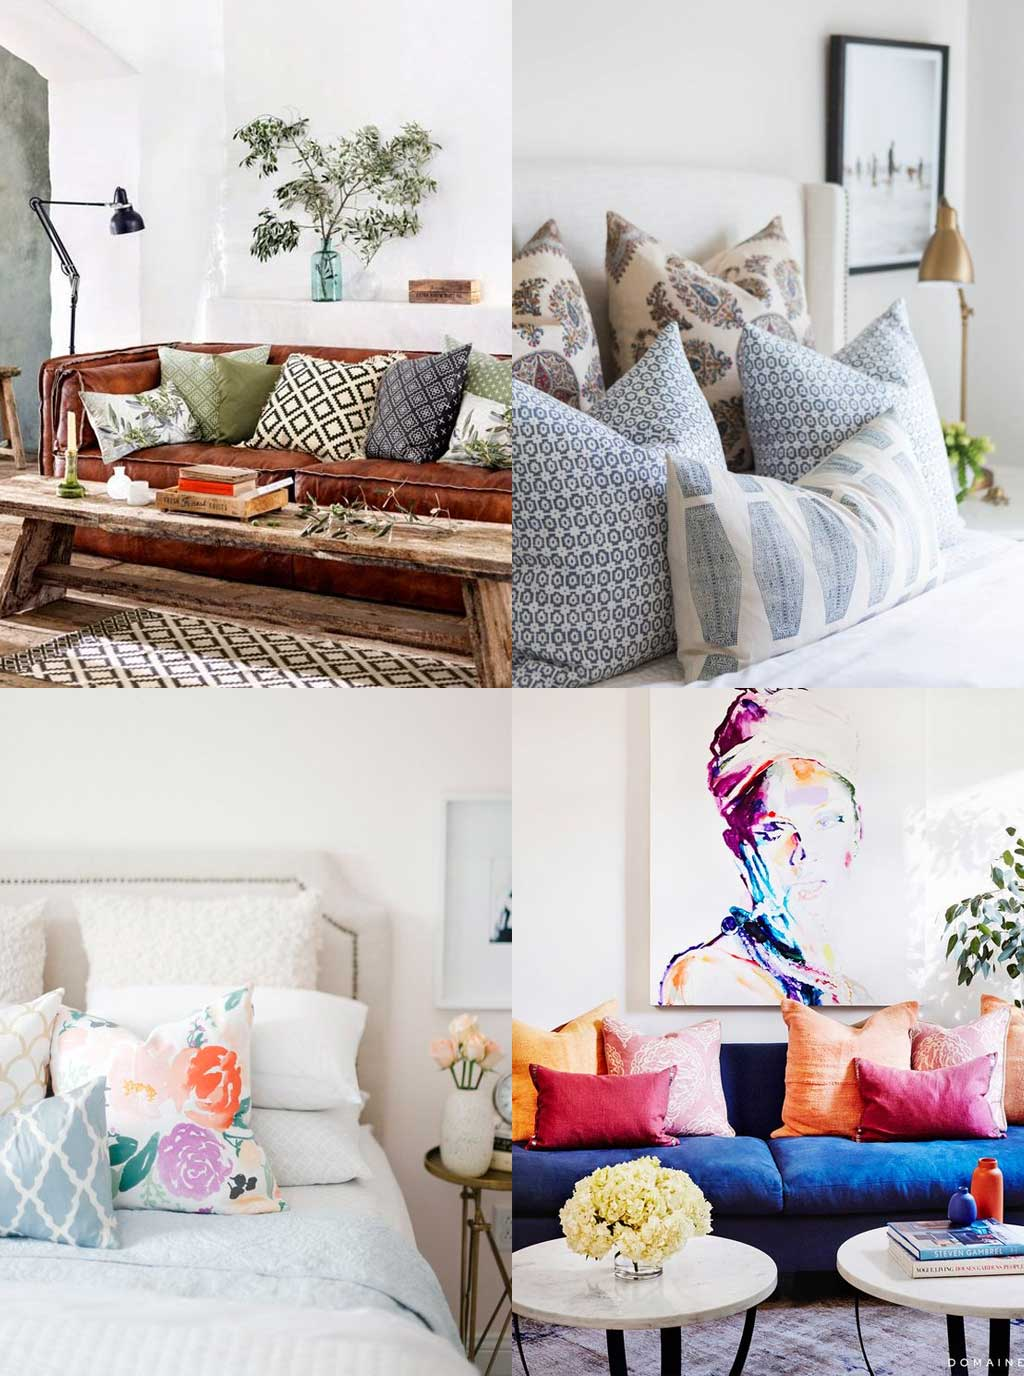 Interior Design Tip 06 - Pile the pillows high - Hutsly Blog